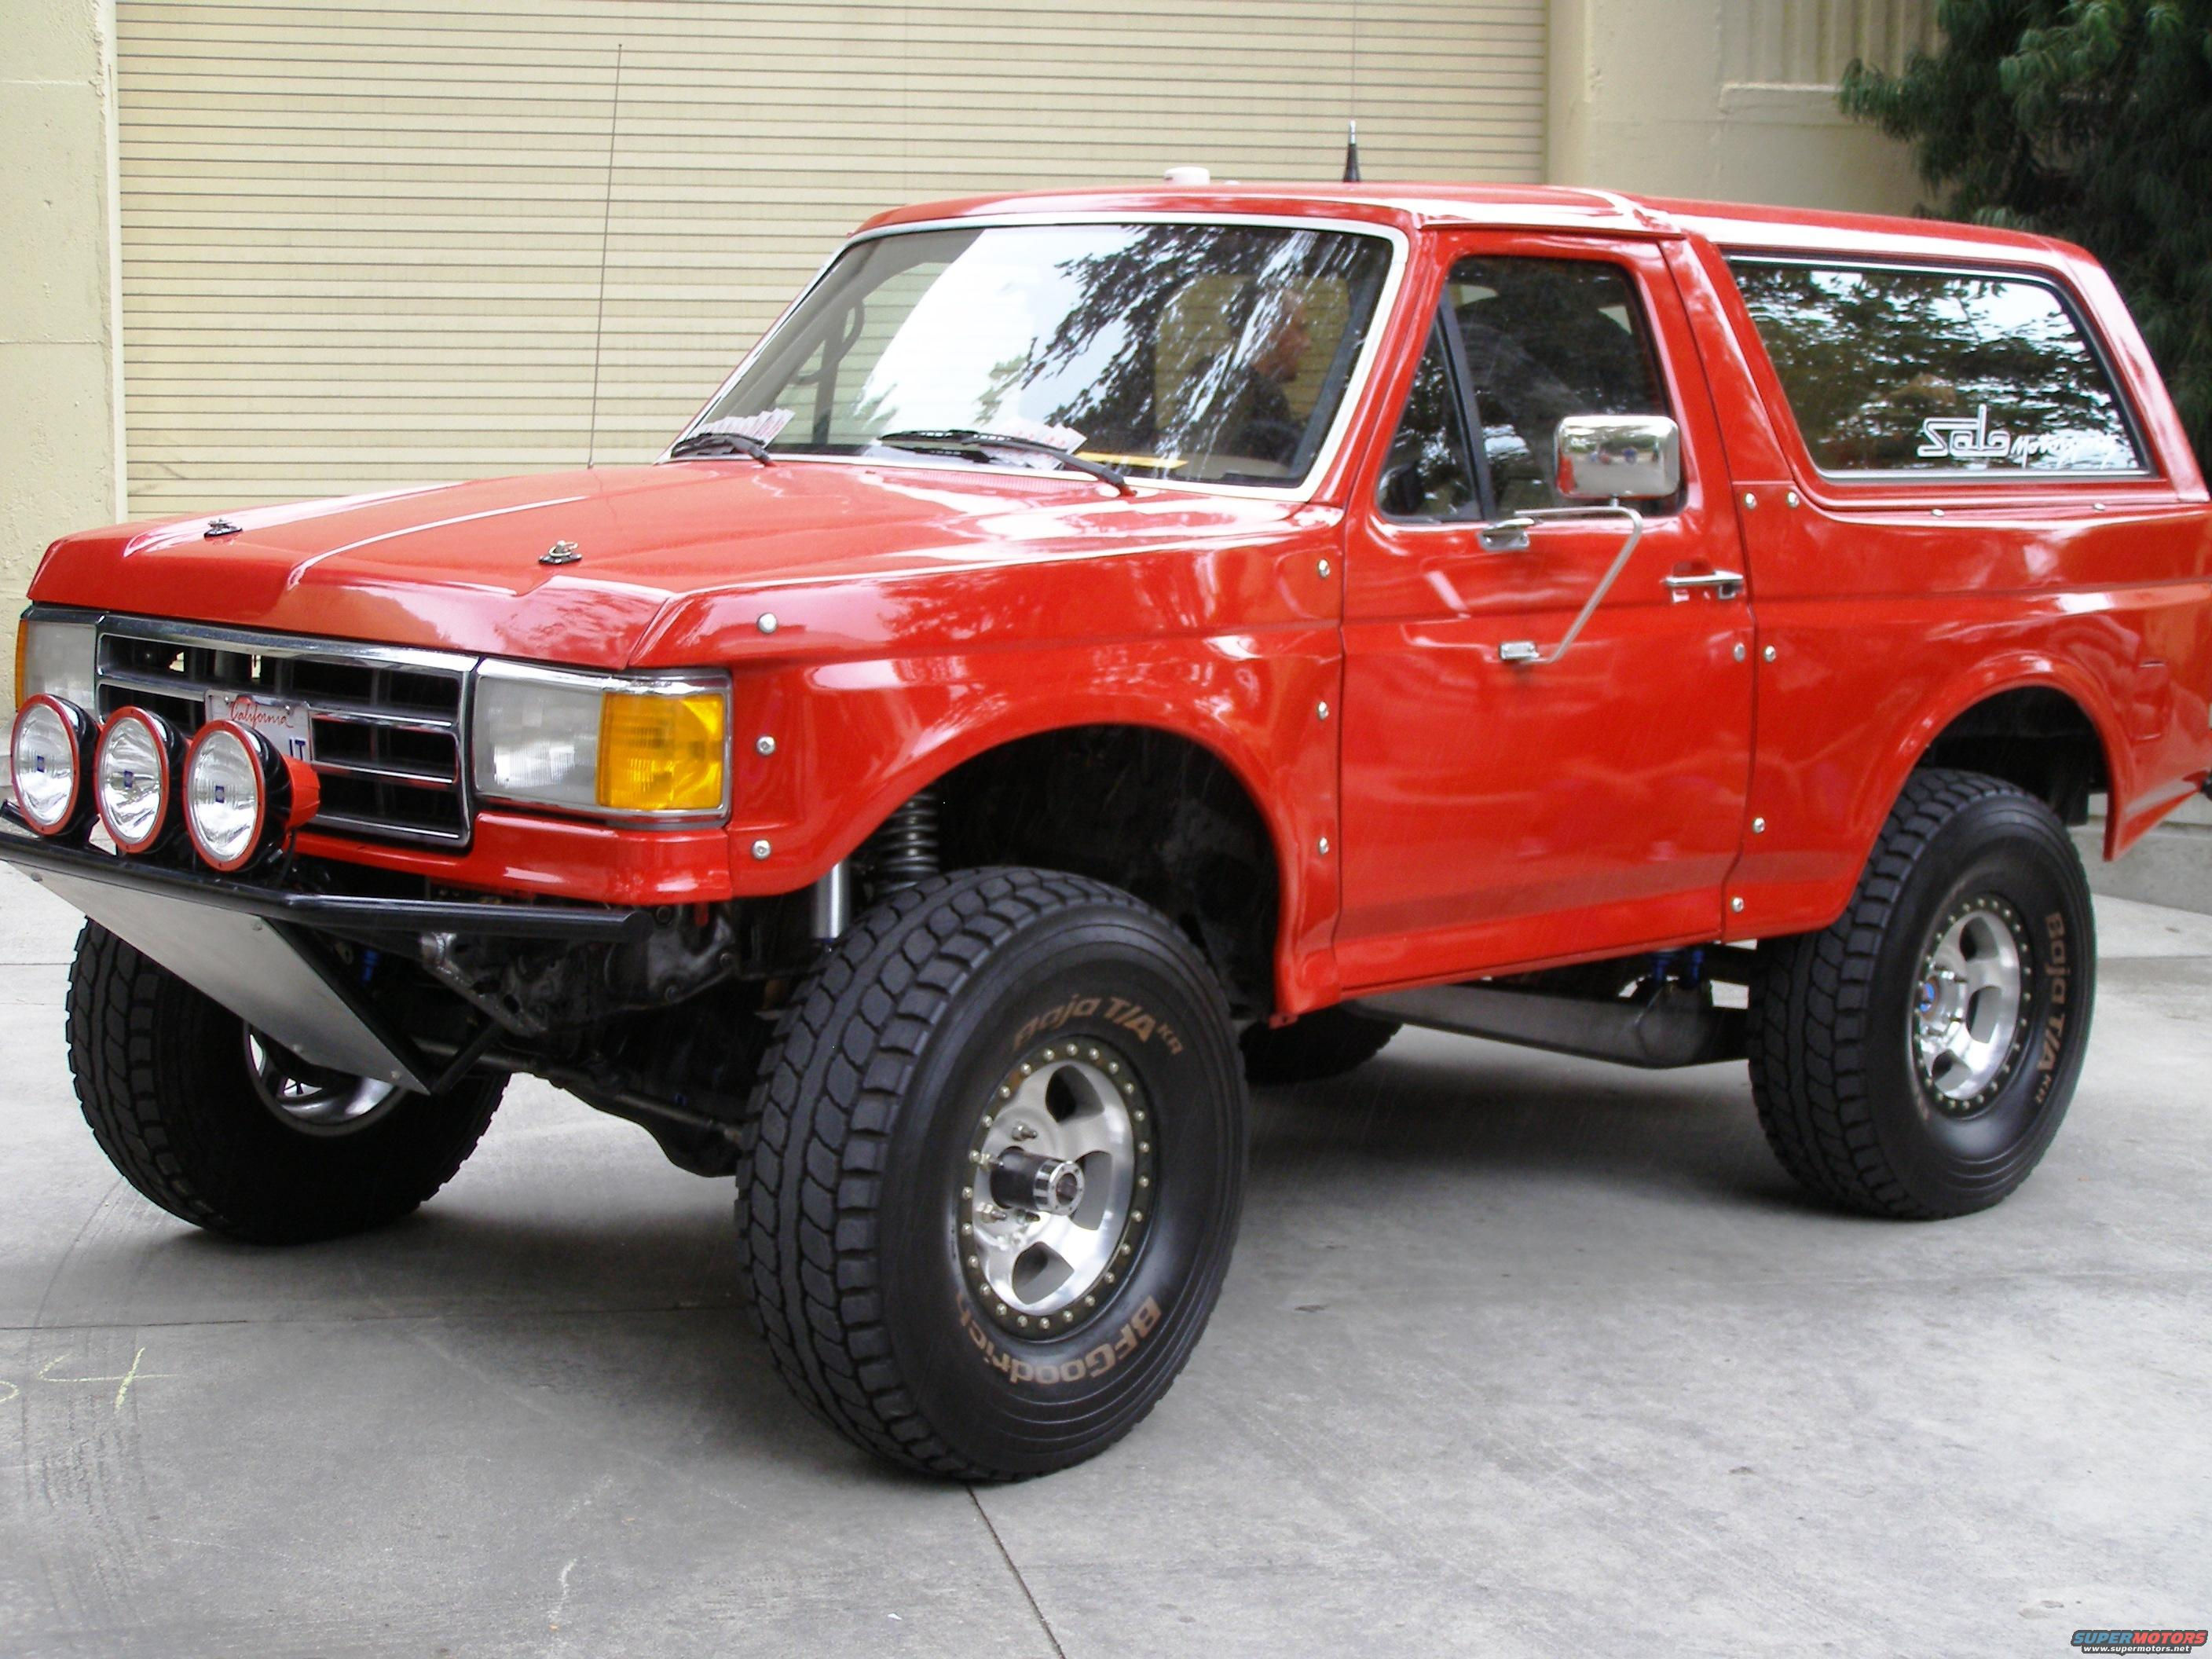 Diesel ford bronco for sale - 260 Best Bronco Images On Pinterest Ford Bronco Ford Trucks And Broncos